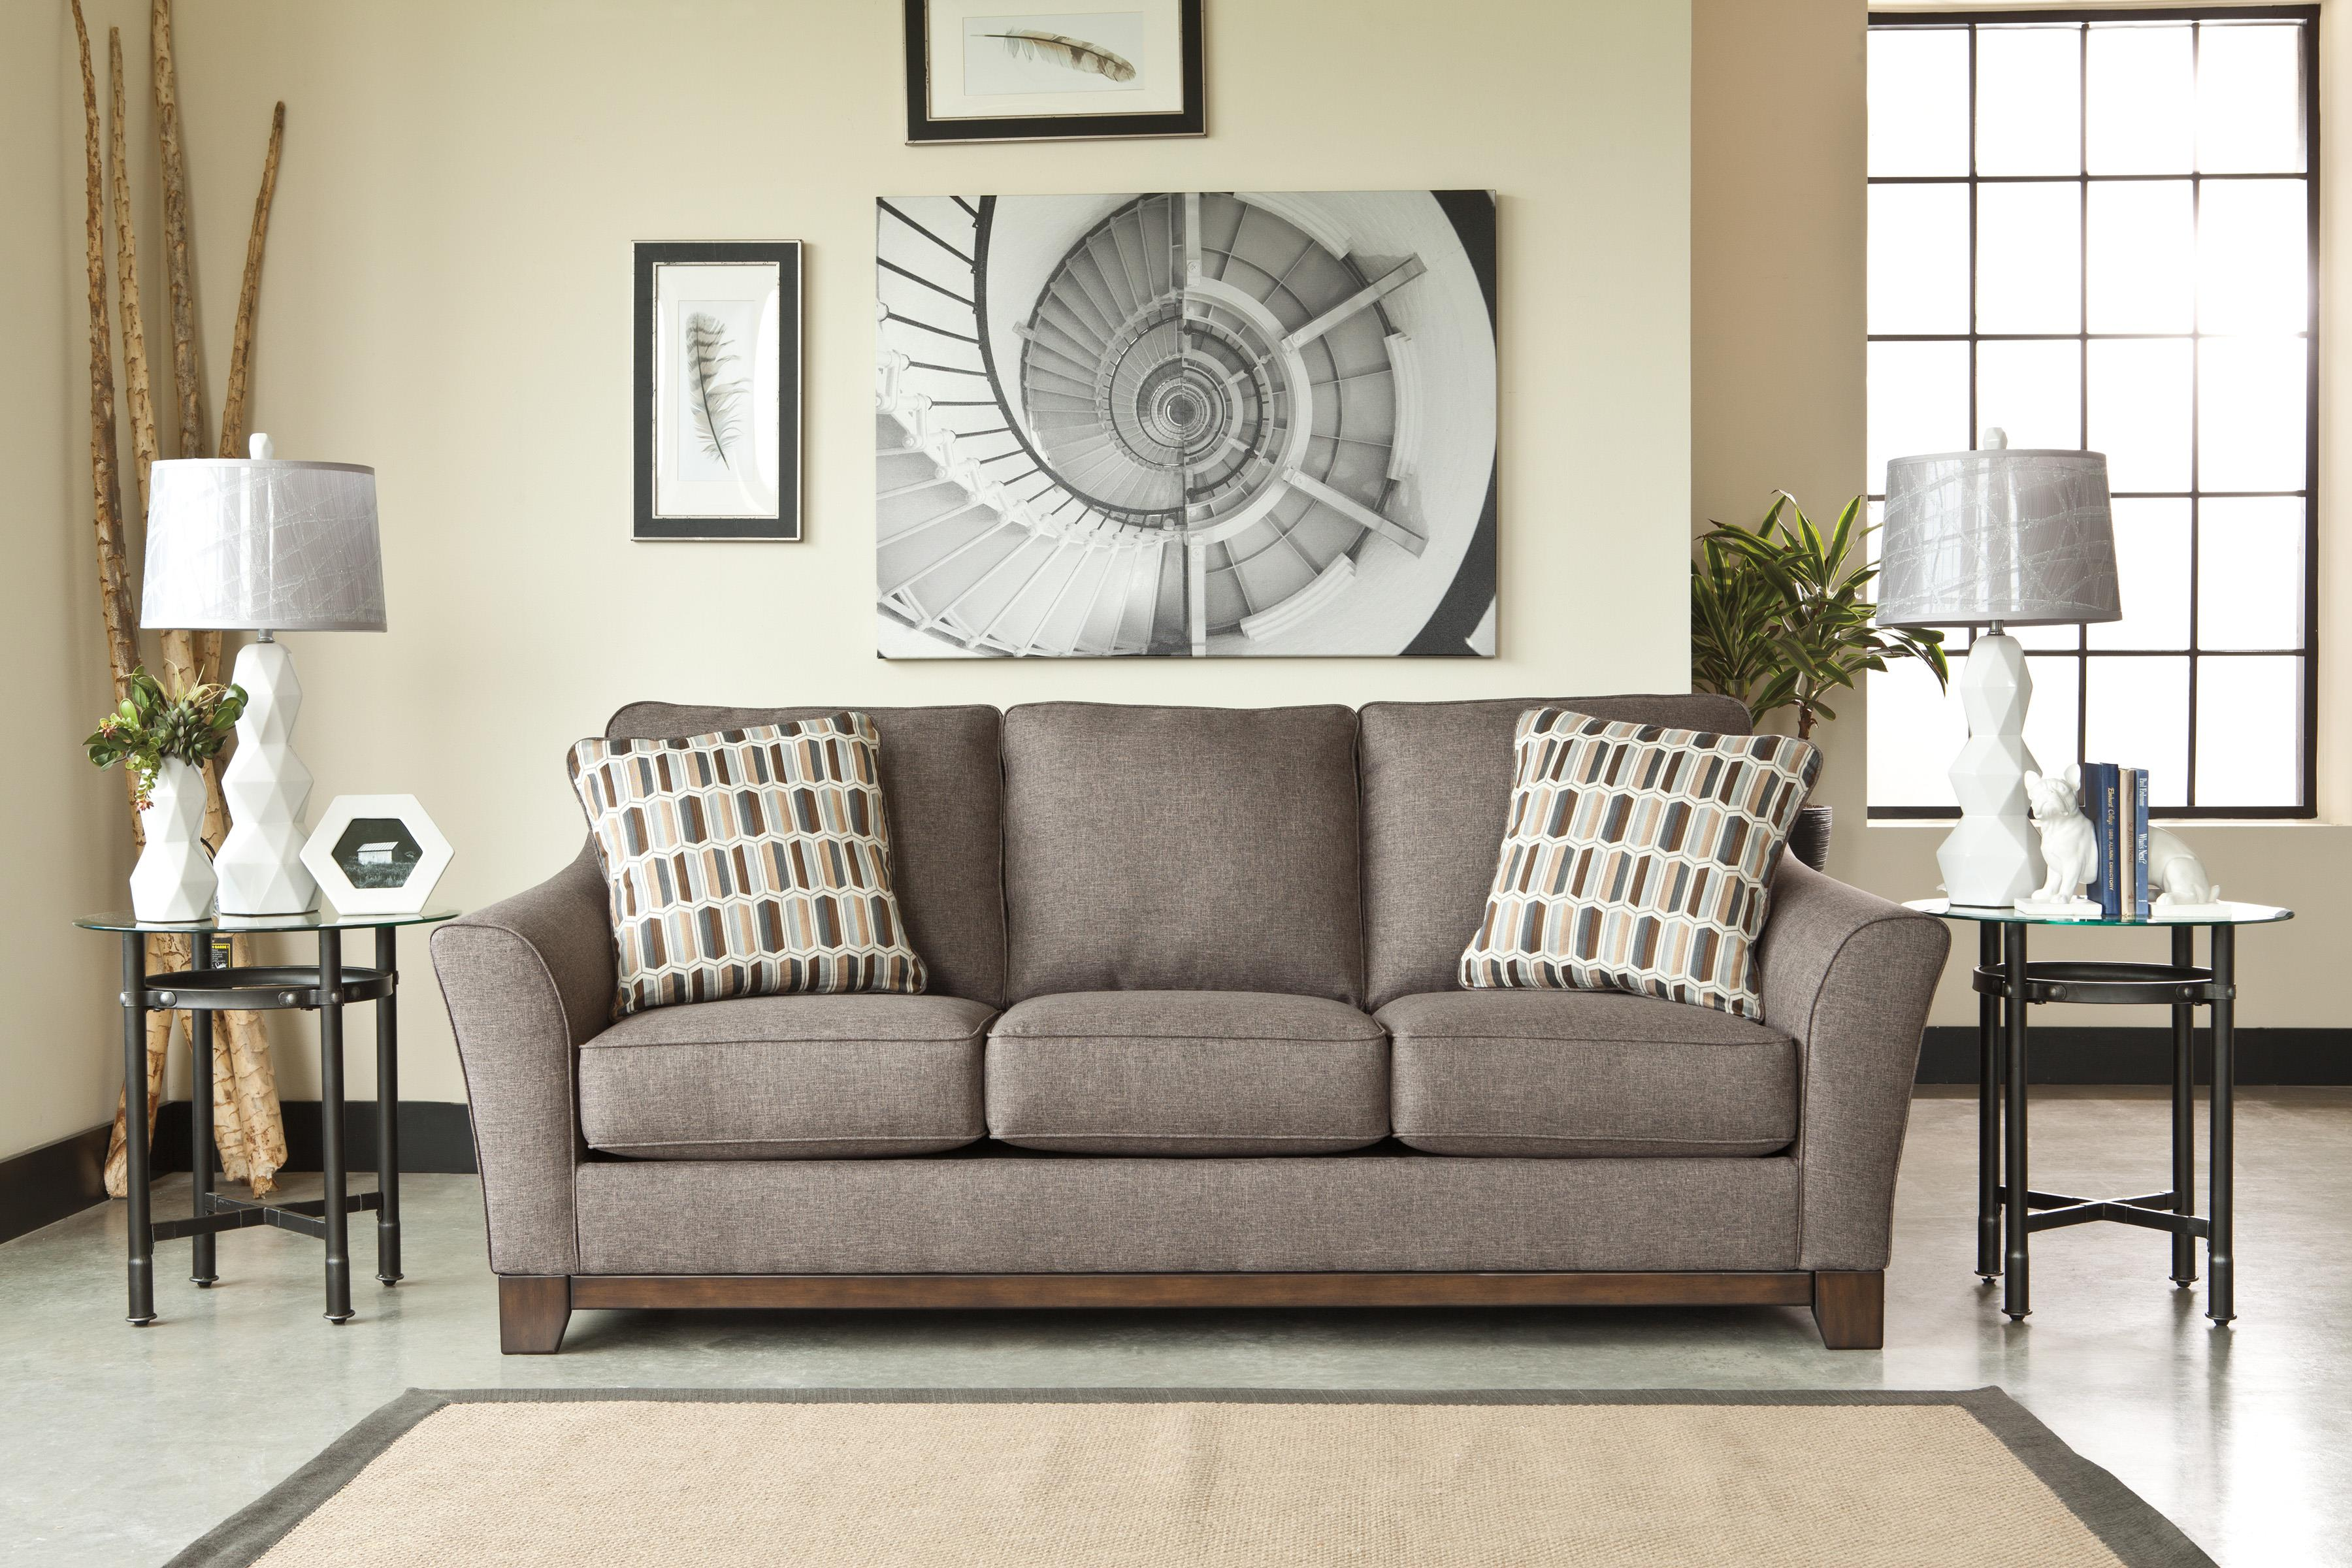 Contemporary Sofa With Front Wood Rail By Benchcraft Wolf And Gardiner Wolf Furniture